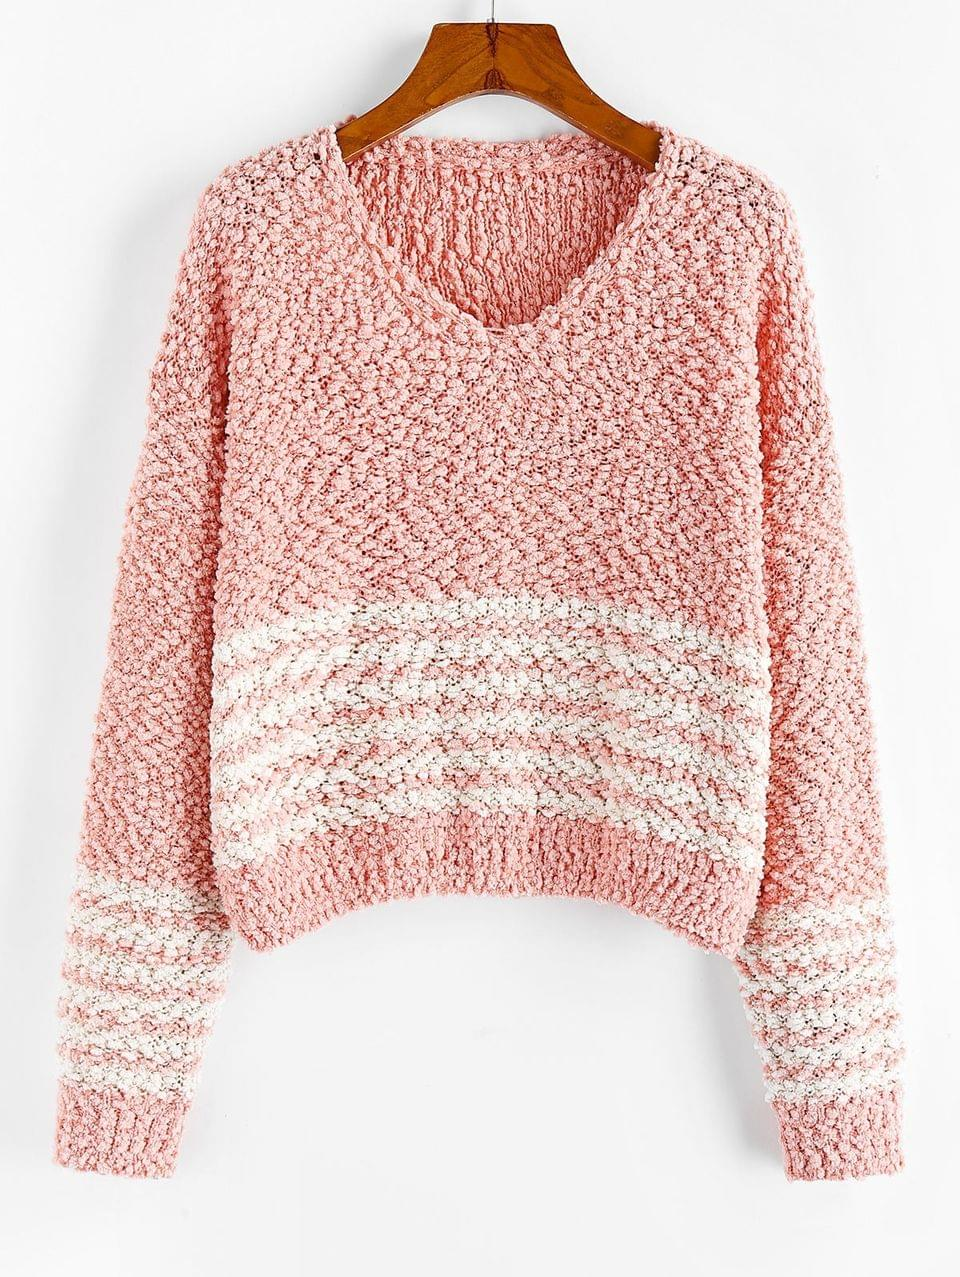 Women's Popcorn Knit Striped Drop Shoulder Sweater - Deep Peach L